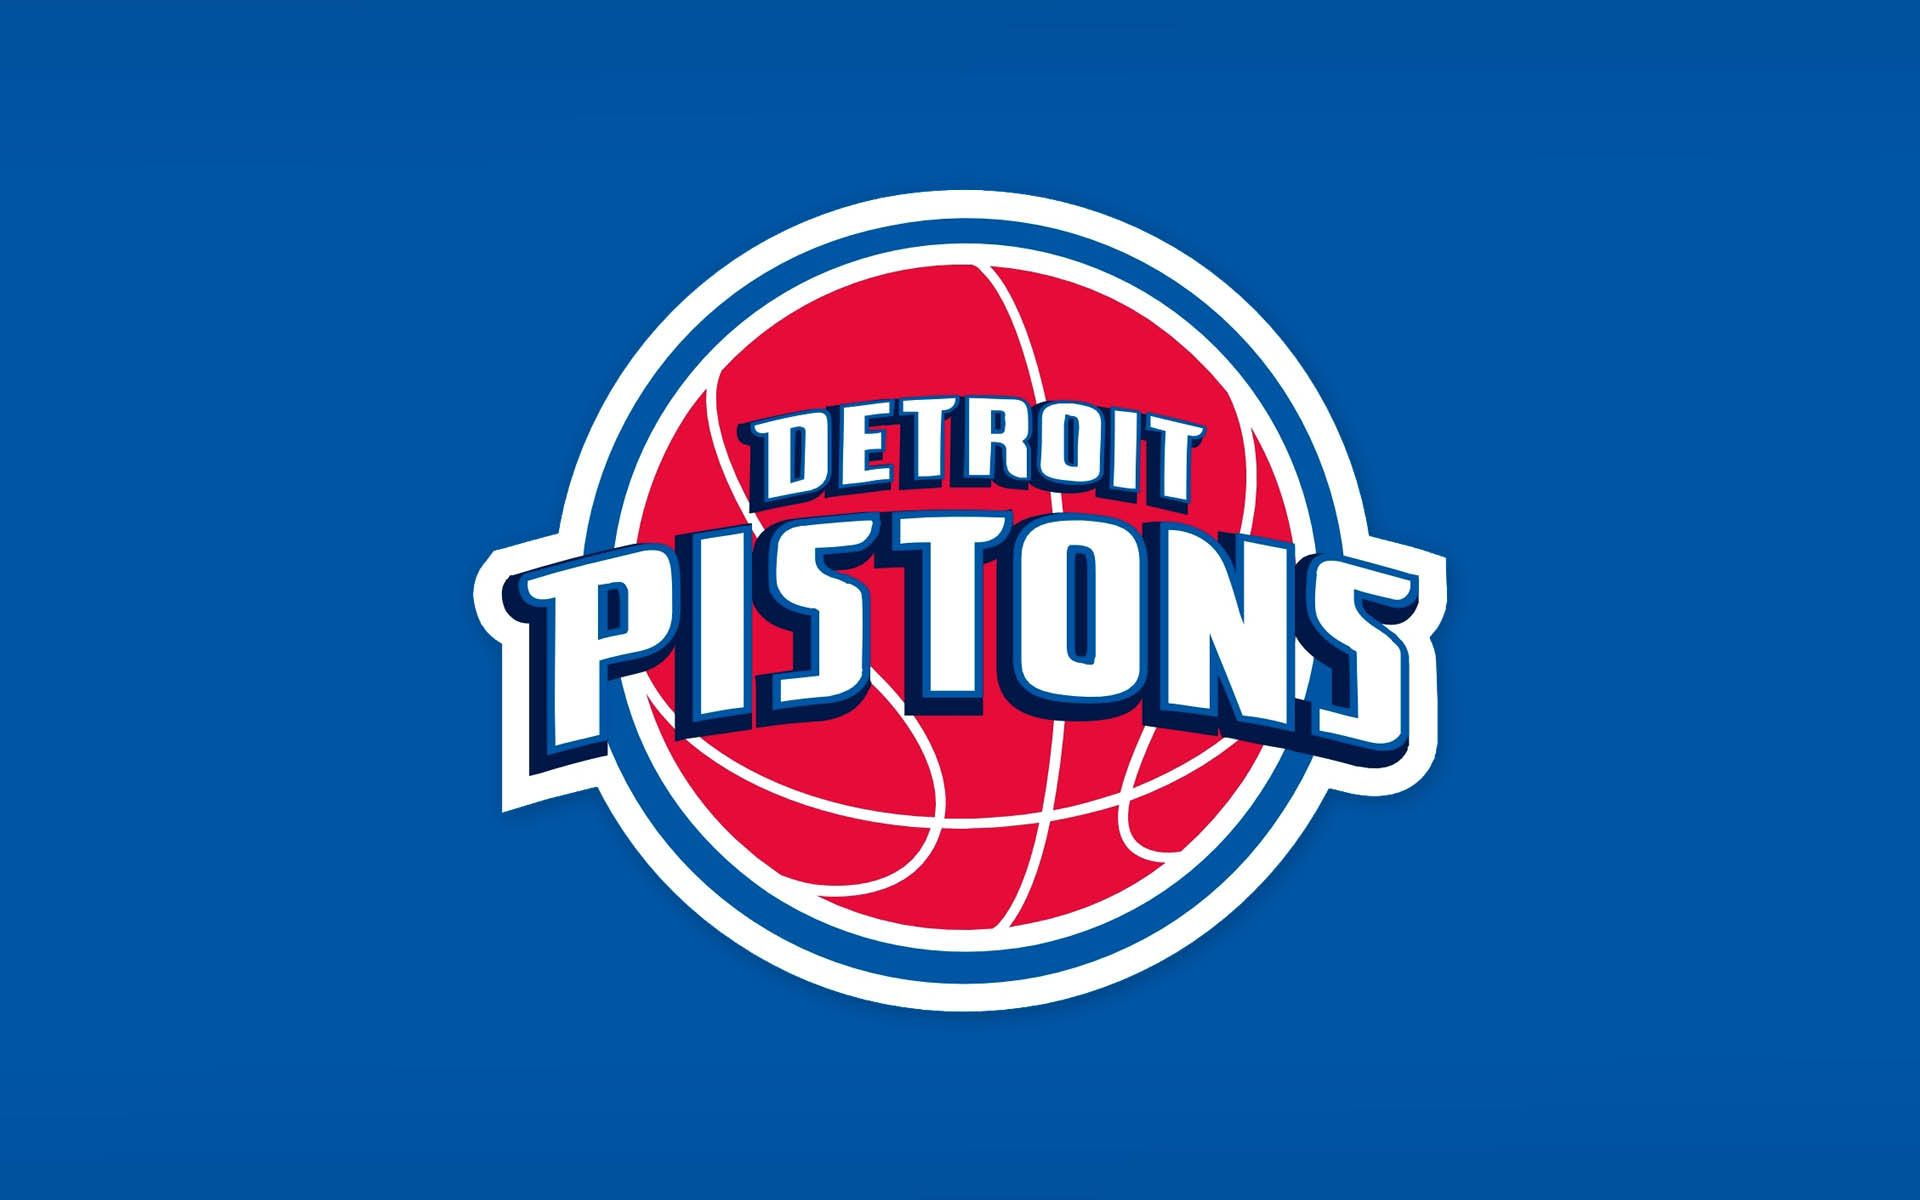 DETROIT PISTONS NBA Draft 2016 - Round 2 Pick 49 - Player: Michael Gbinije - Position: Shooting Guard - College: Syracuse - NBA Profile: http://www.nba.com/draft/2016/prospects/michael_gbinije